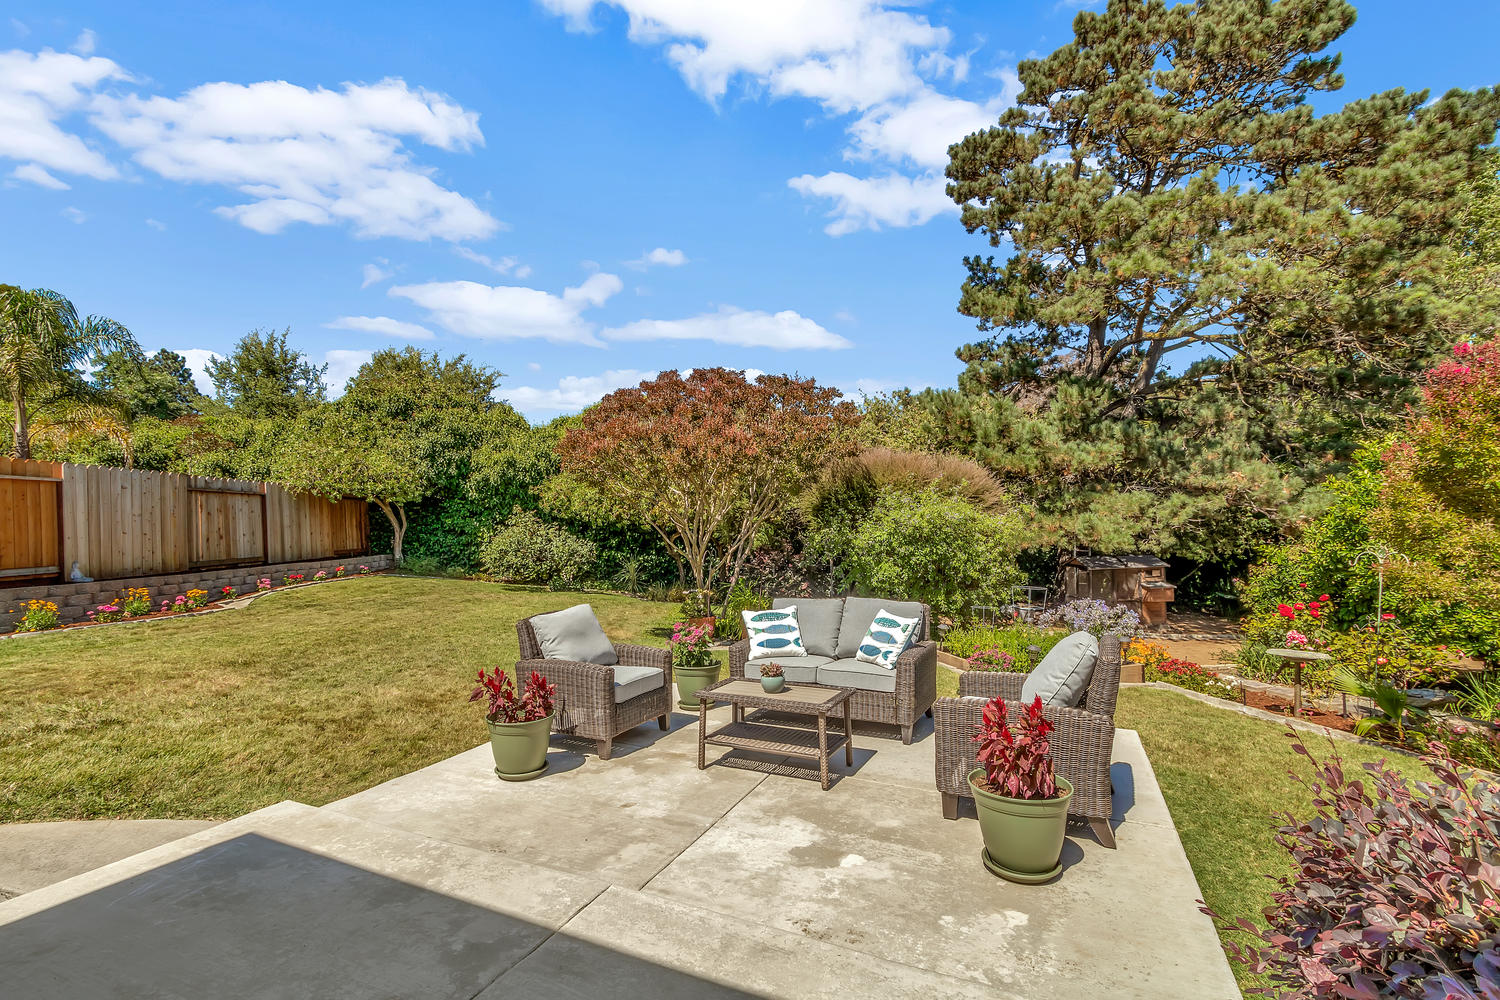 The secluded backyard offers a park-like setting with mature trees and professional landscaping.